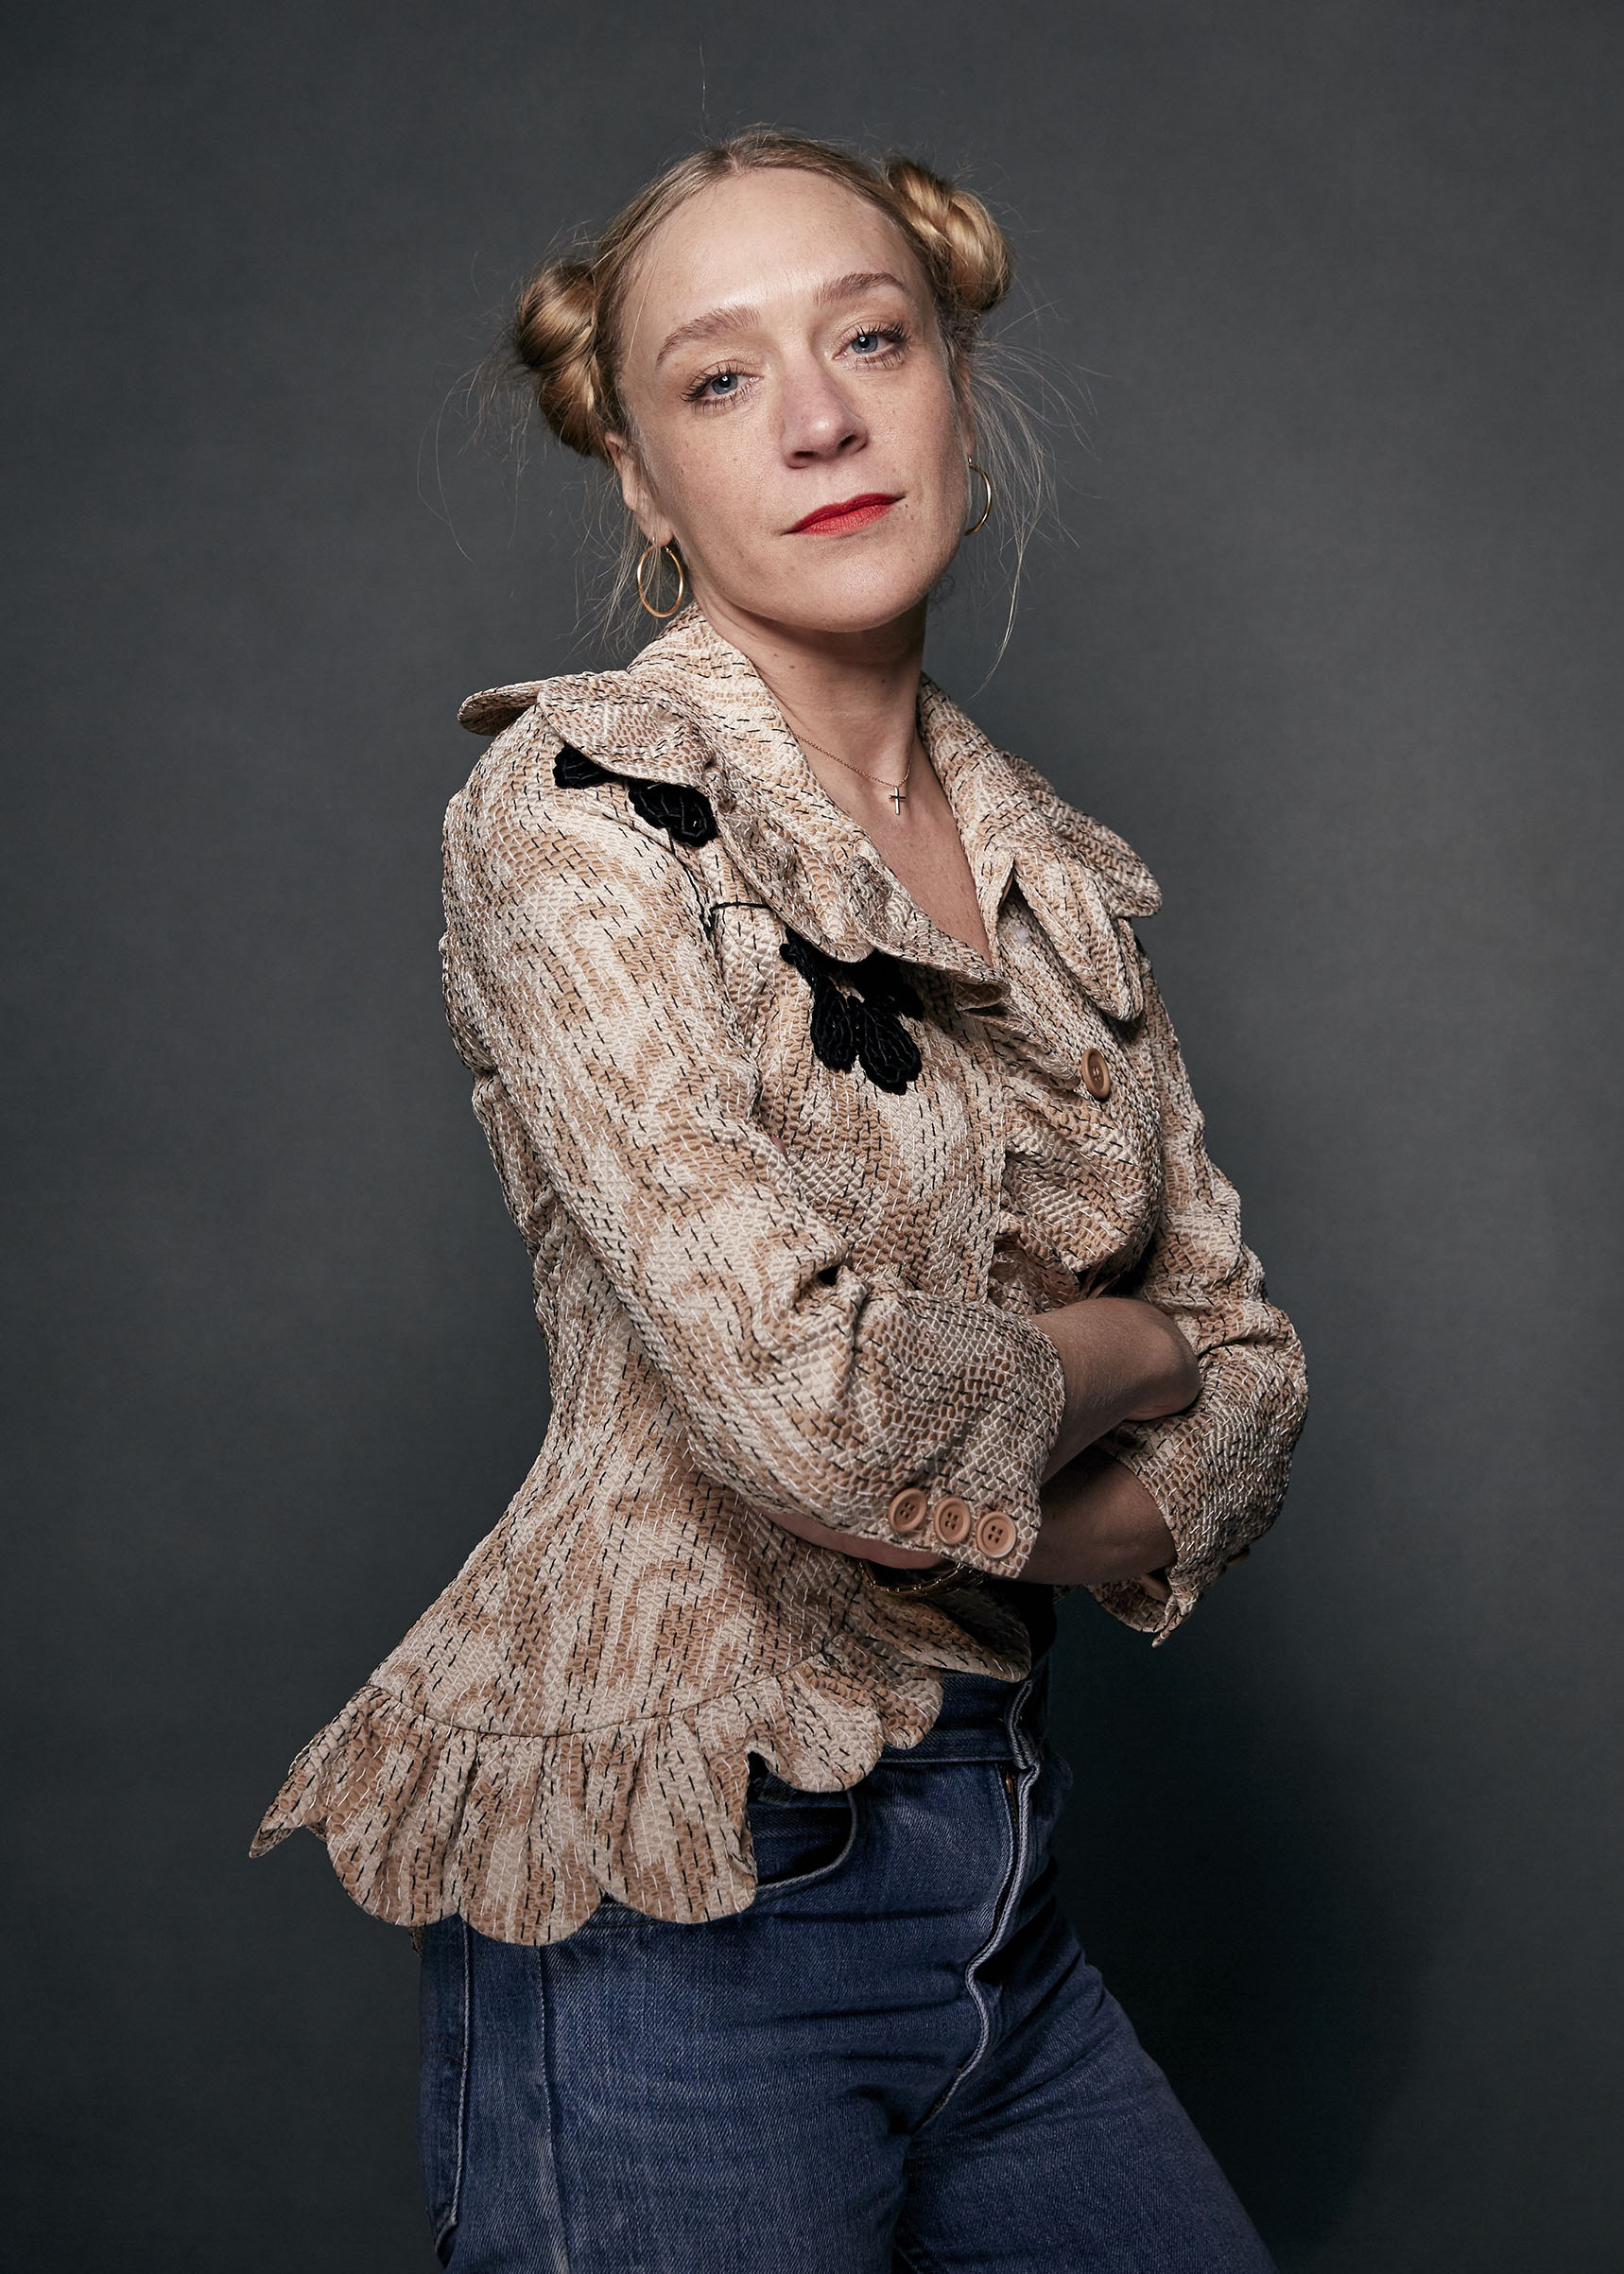 Chloe Sevigny poses for a portrait during the Sundance Film Festival, in Park City, Utah on Jan 19, 2018.